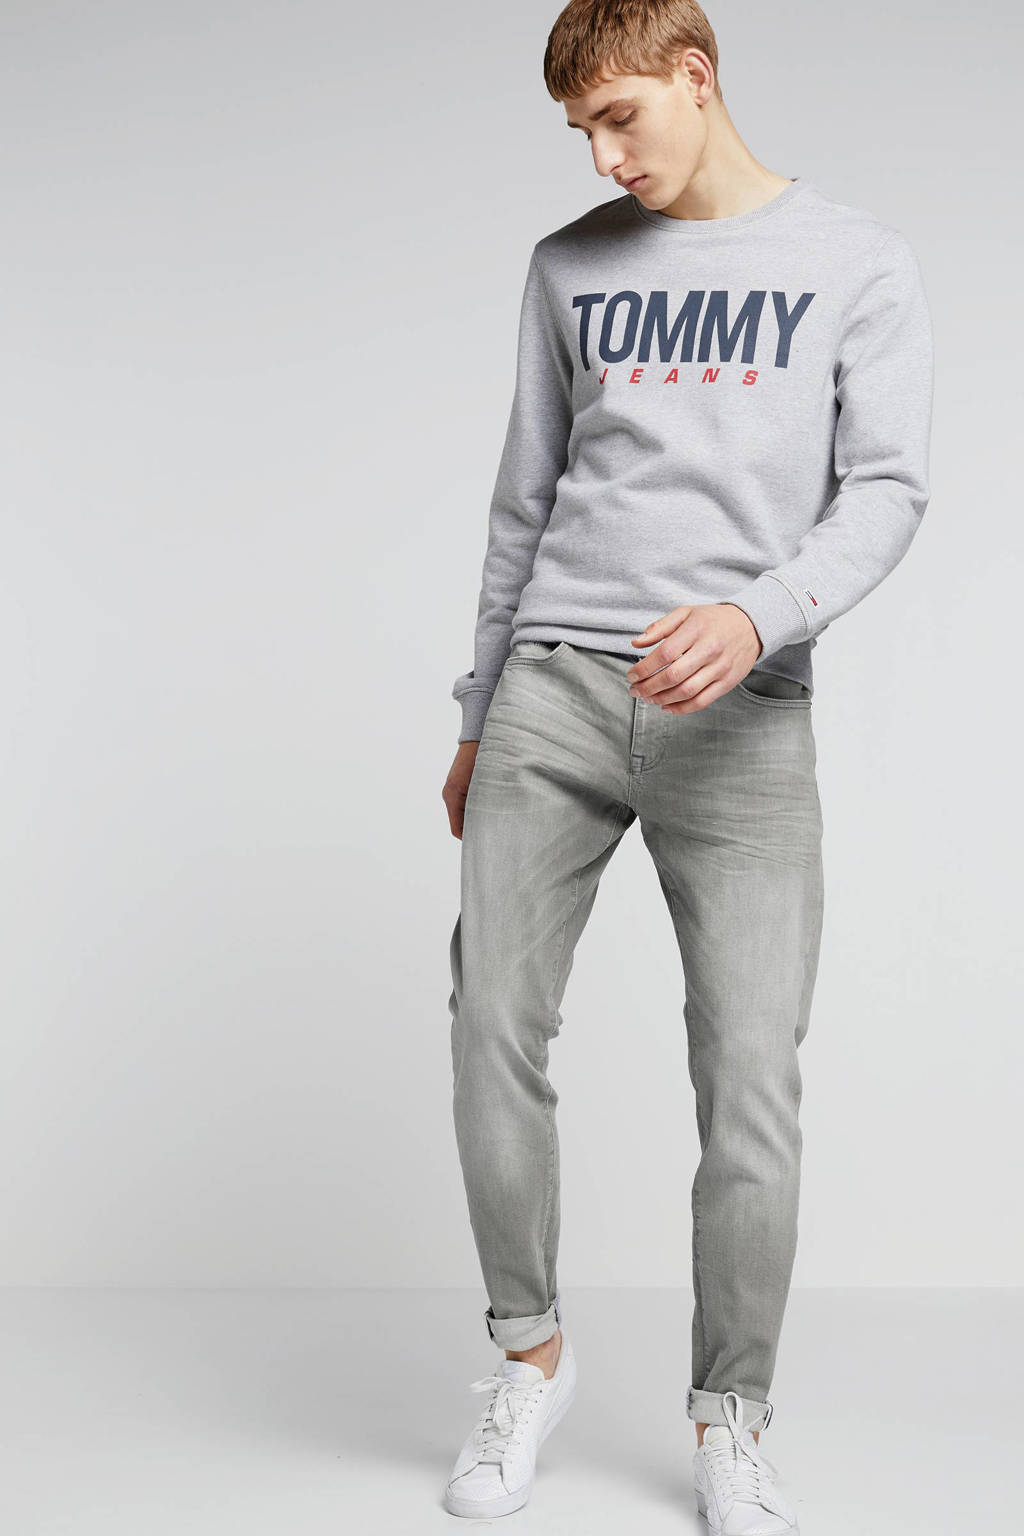 Cars tapered fit jeans Dan grey used, 13 Grey Used